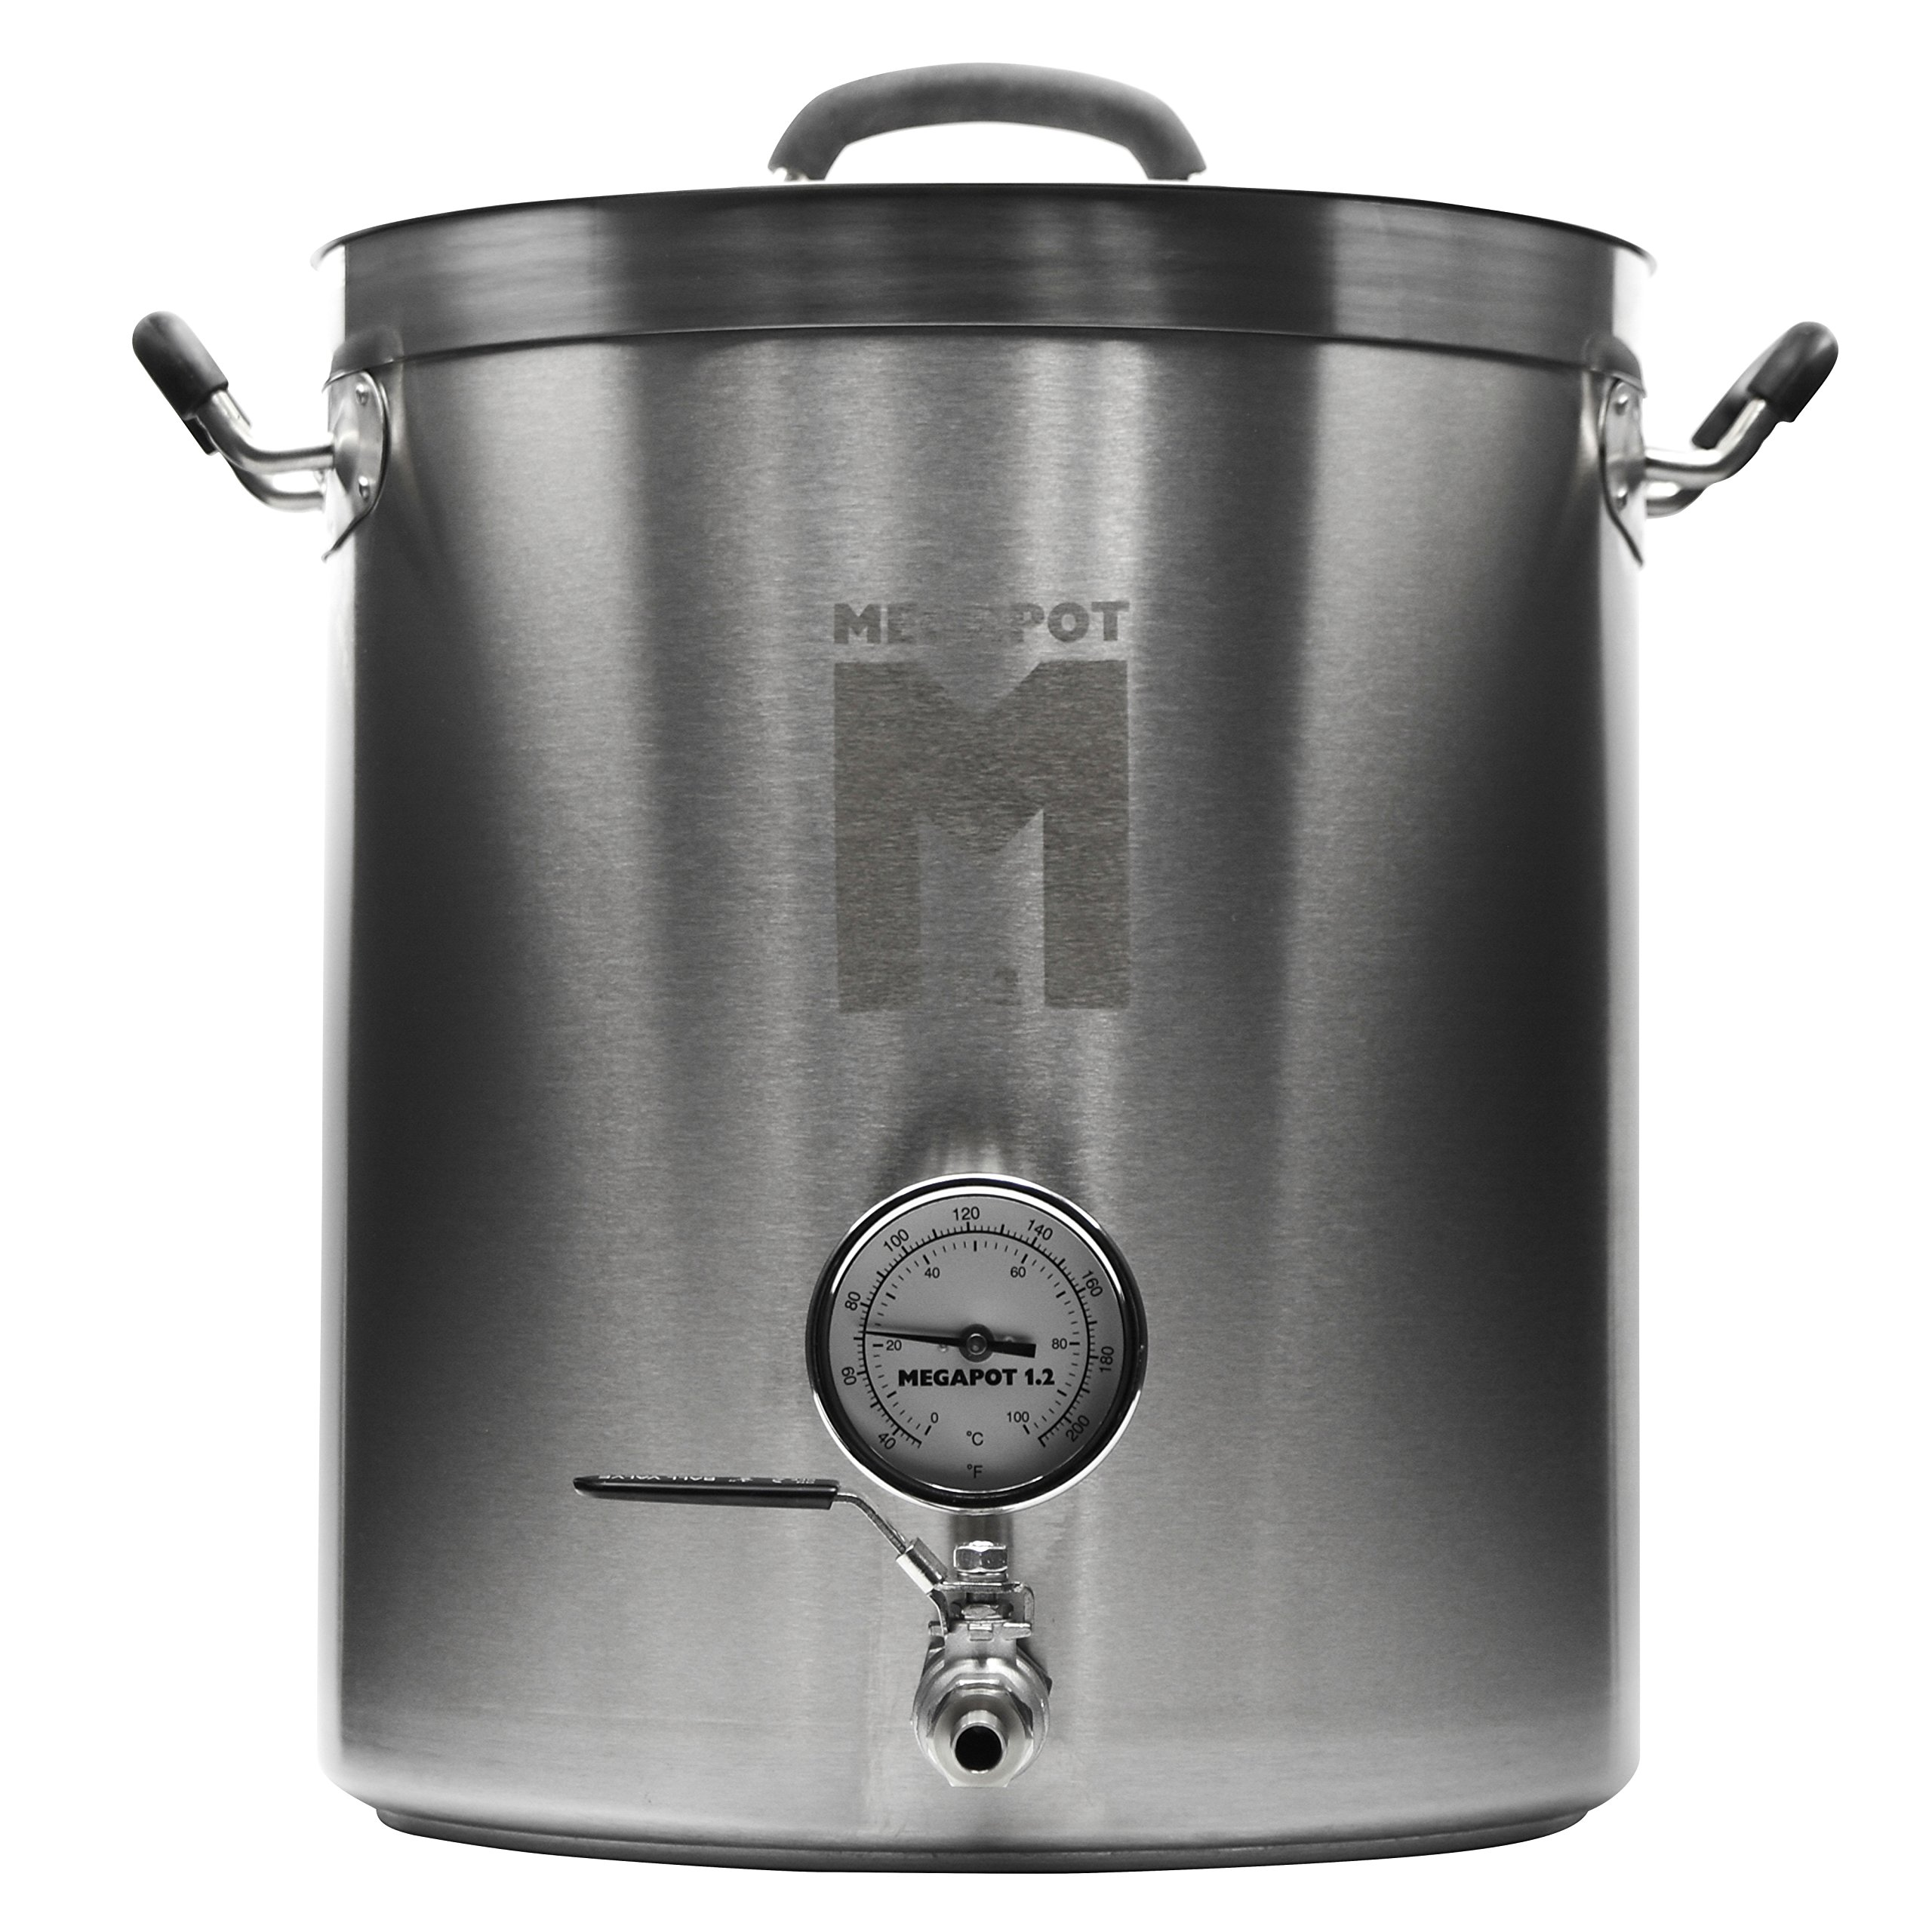 Brew Kettle: Stainless Steel Stock Pot for Homebrew (Kettle with a Valve and Thermometer, 8 Gallon)